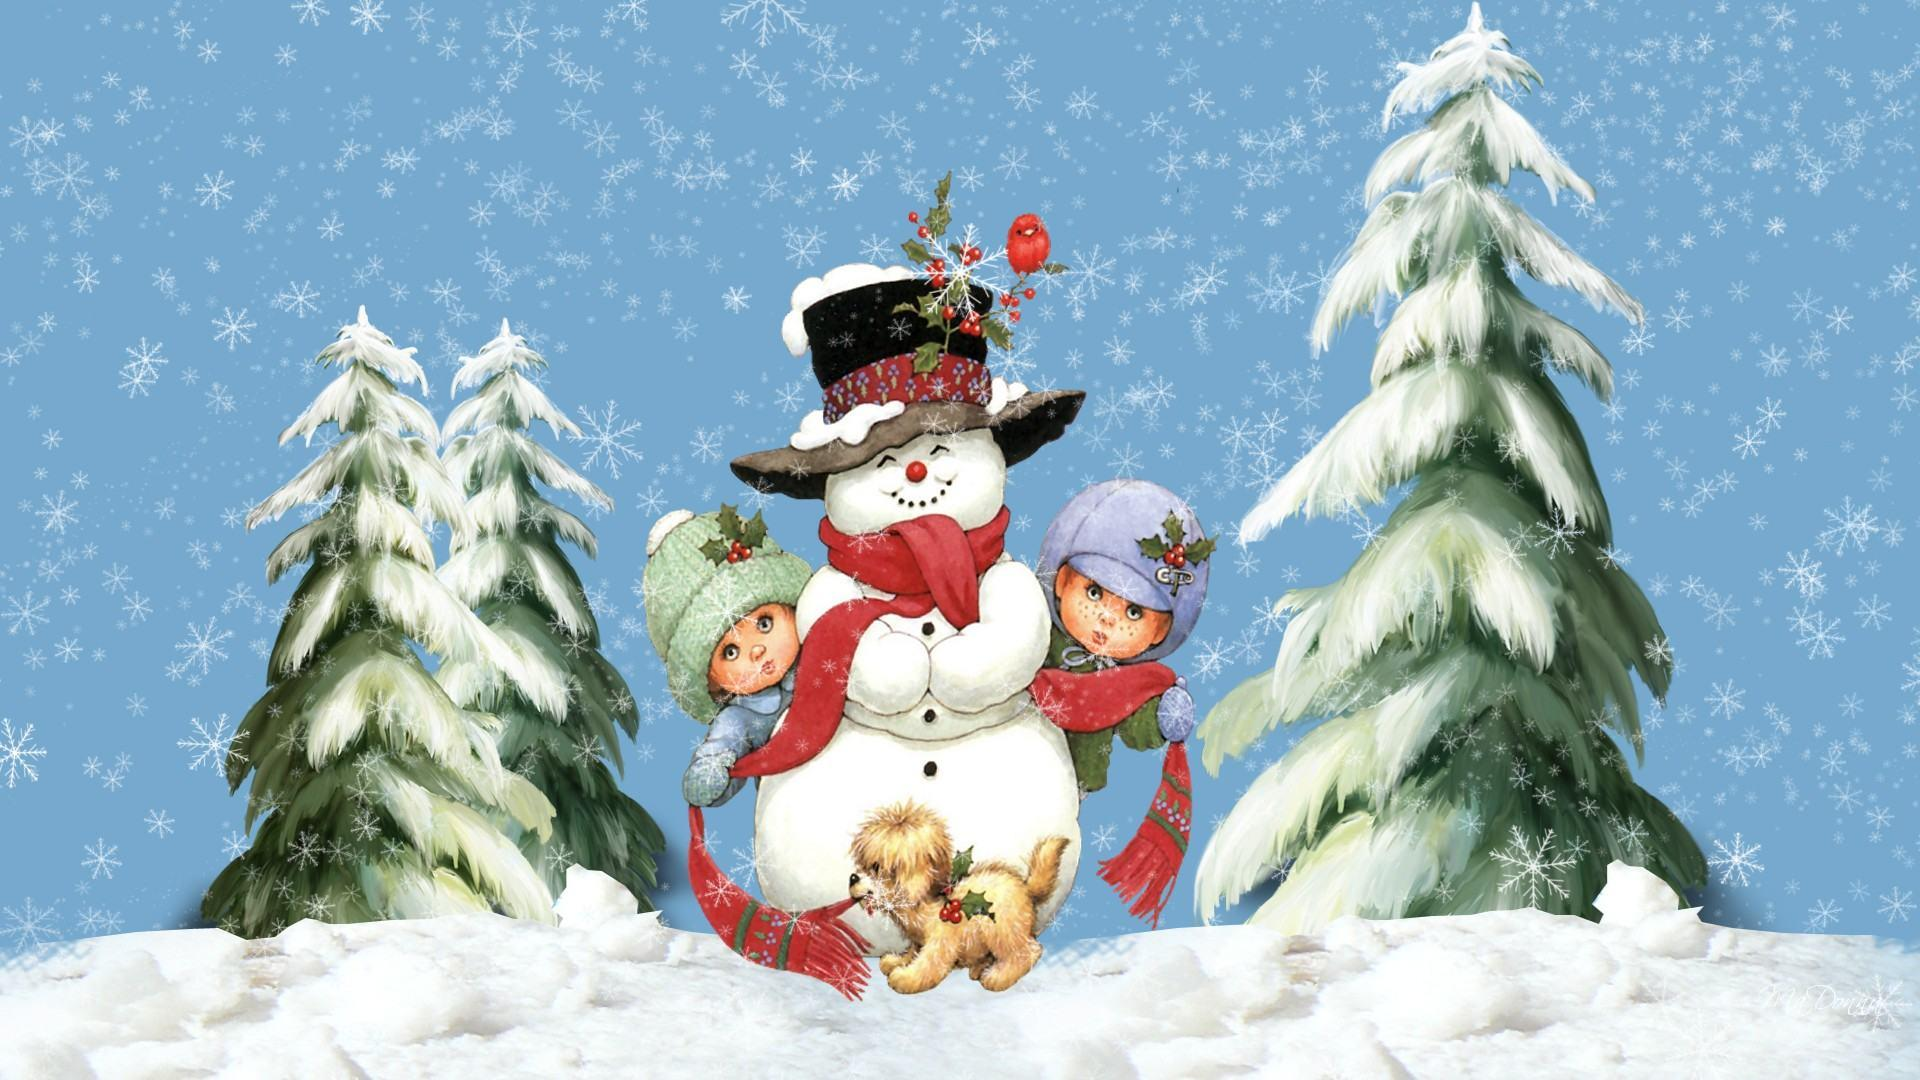 Snow Christmas Wallpapers - Wallpaper Cave